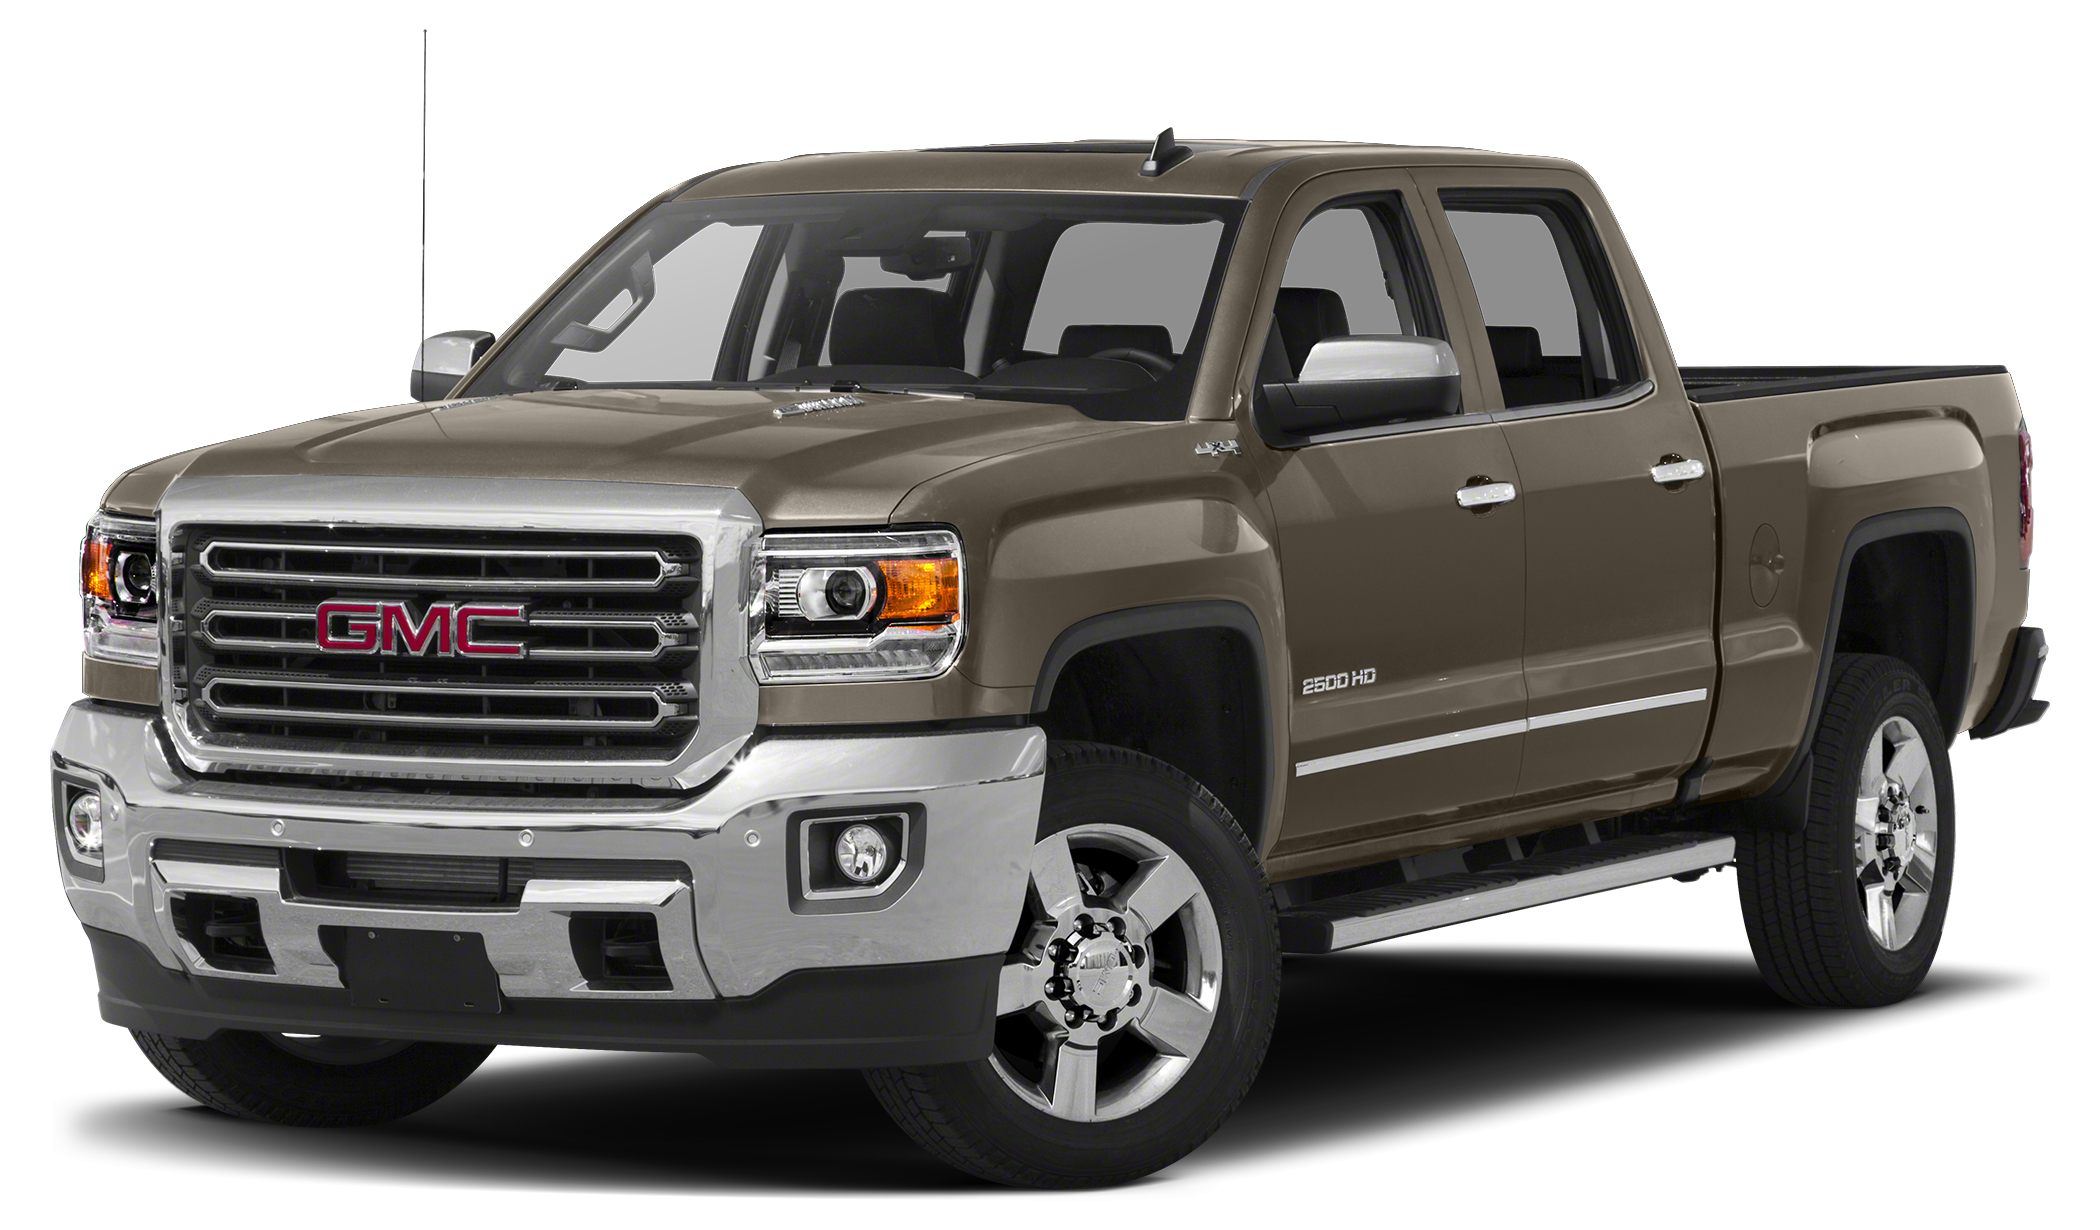 2017 GMC Sierra 2500HD SLT Thank you for visiting another one of Conley Buick GMCs exclusive list